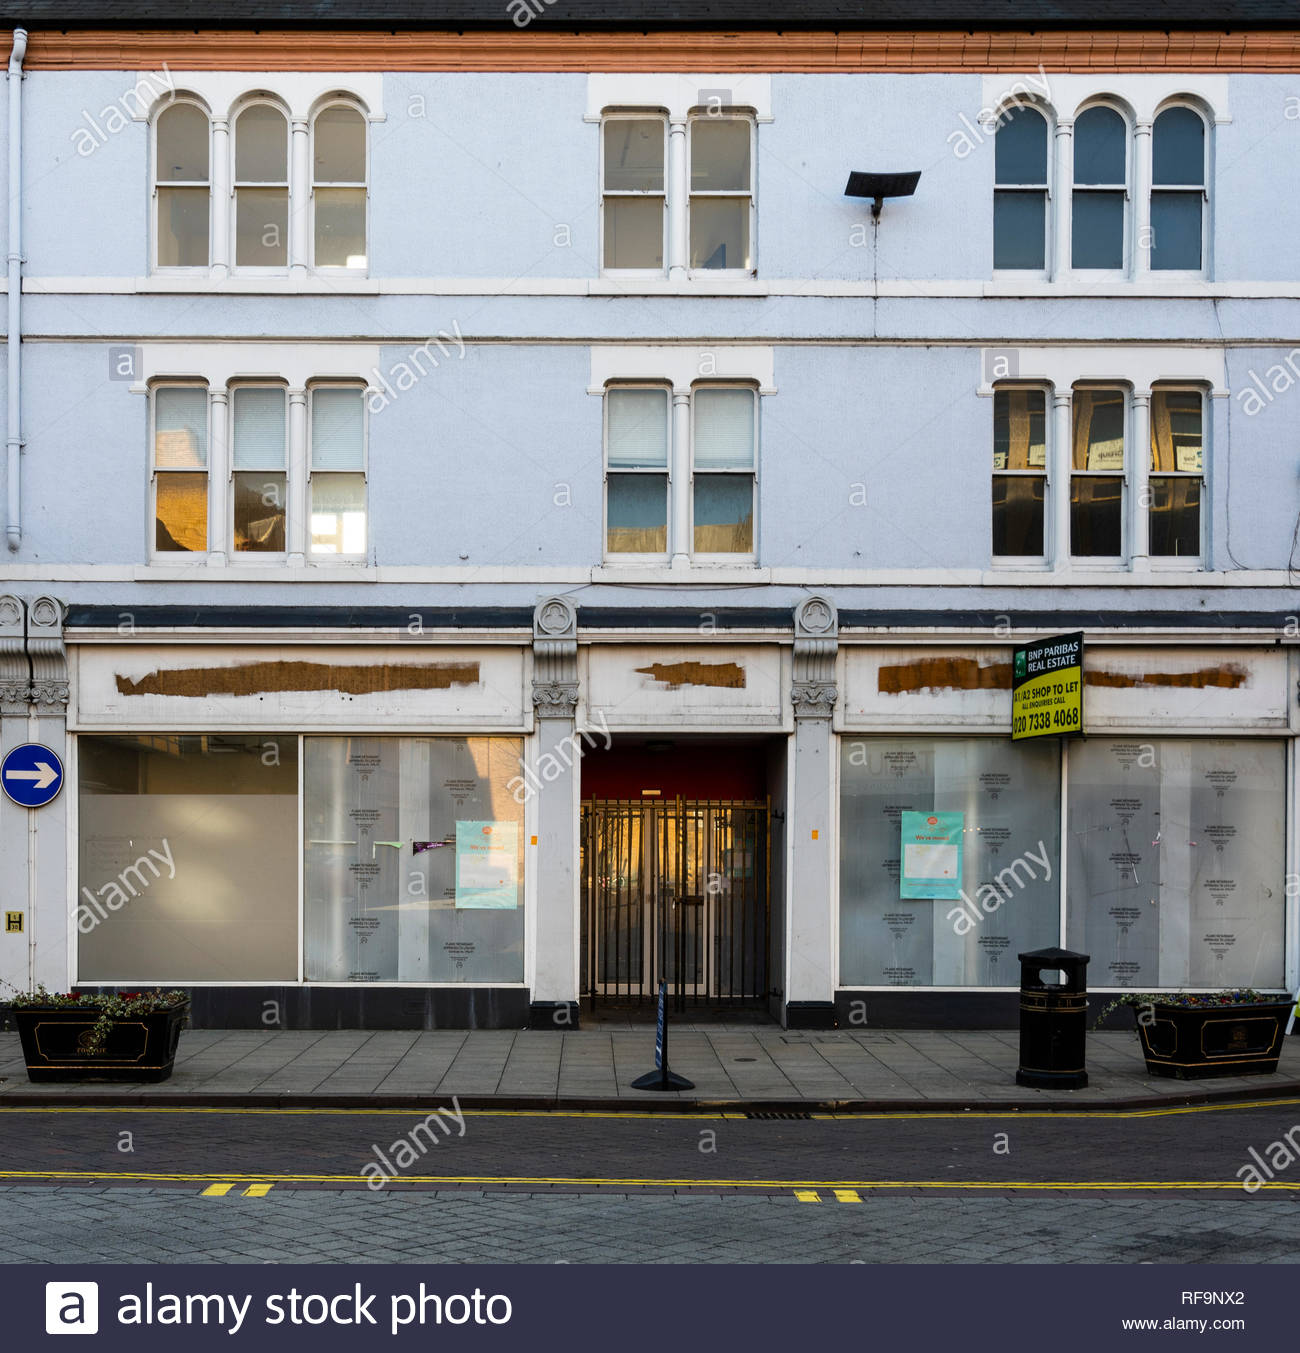 The former Main Post Office building in Cowgate, Peterborough, which moved to WH Smith in 2016 and has been unoccupied ever since - Stock Image